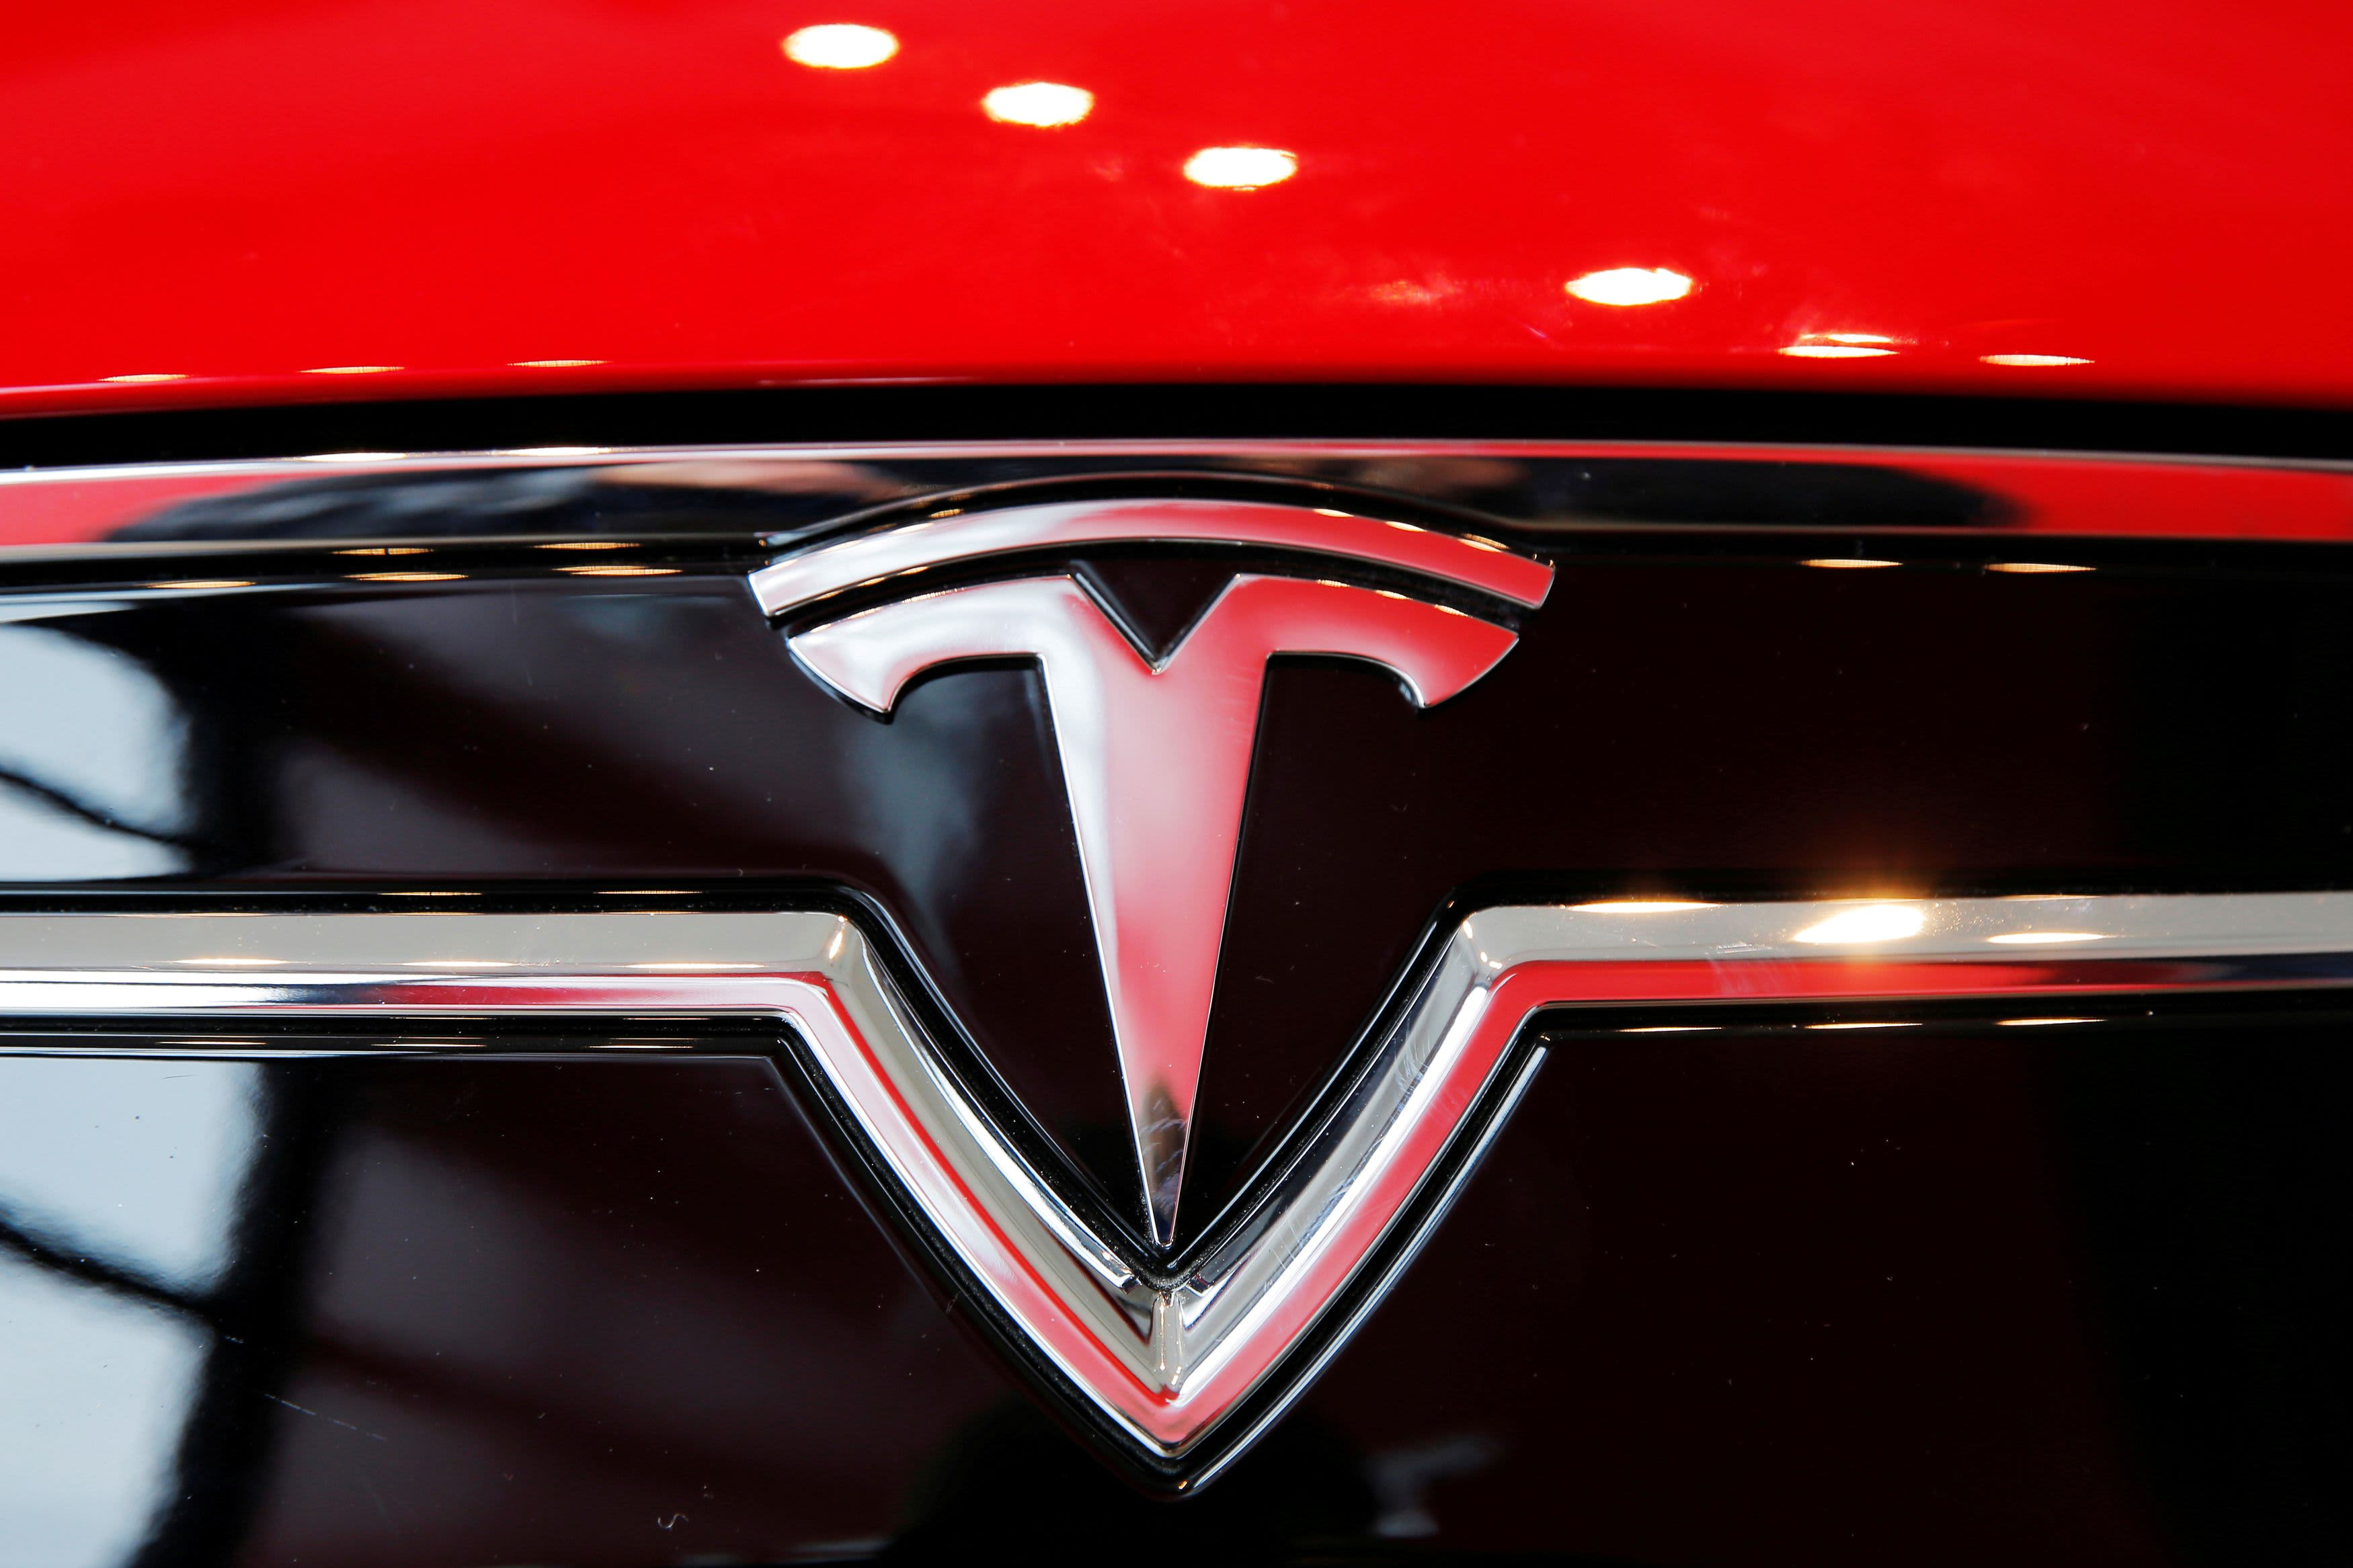 'No one was driving' in Tesla crash that killed two men in Spring, Texas, report says